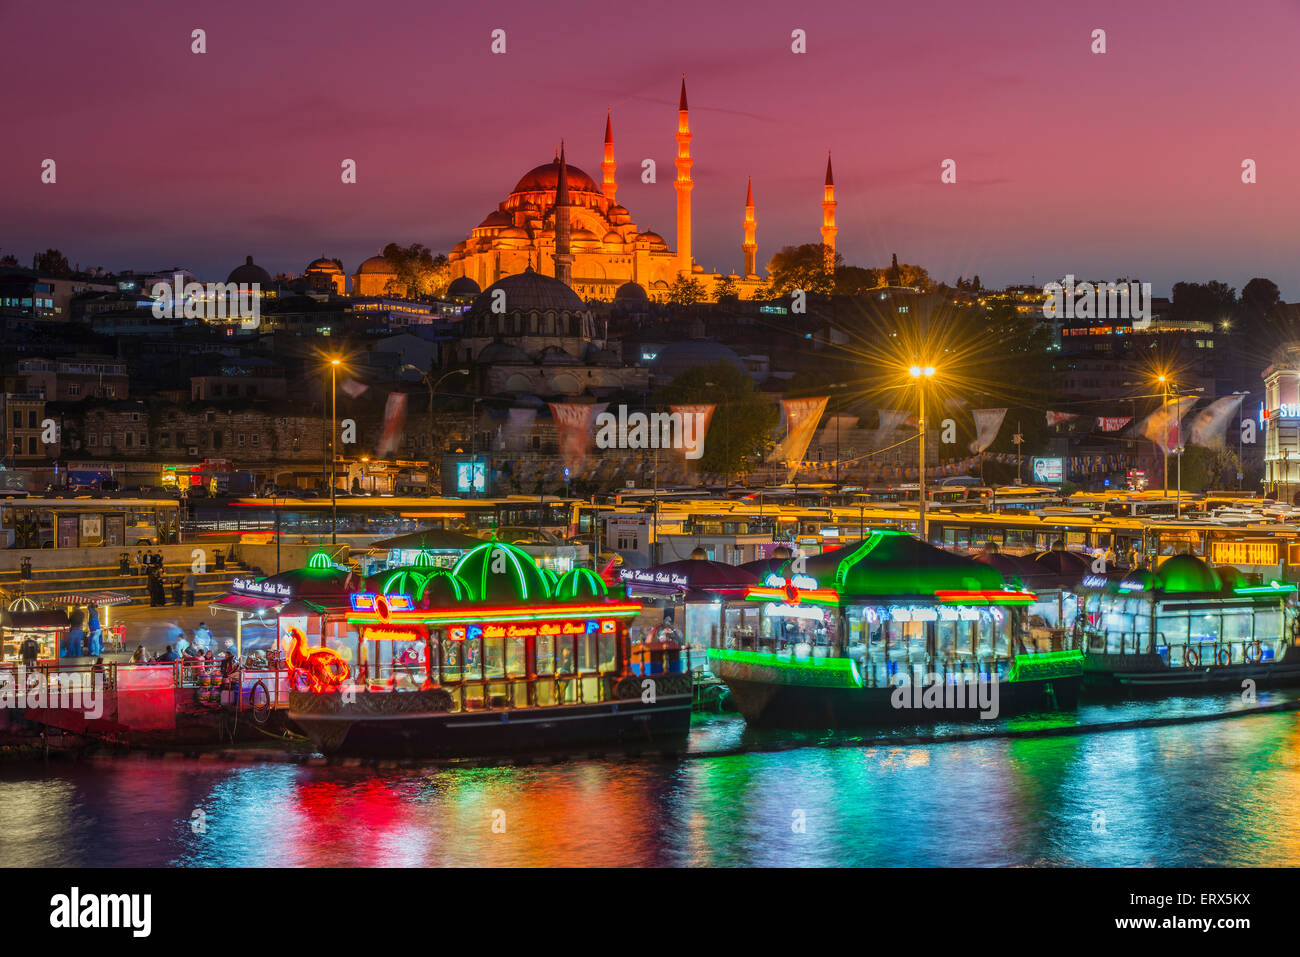 Boat restaurants floating on the Golden Horn with Suleymaniye Mosque behind at dusk, Istanbul, Turkey Stock Photo